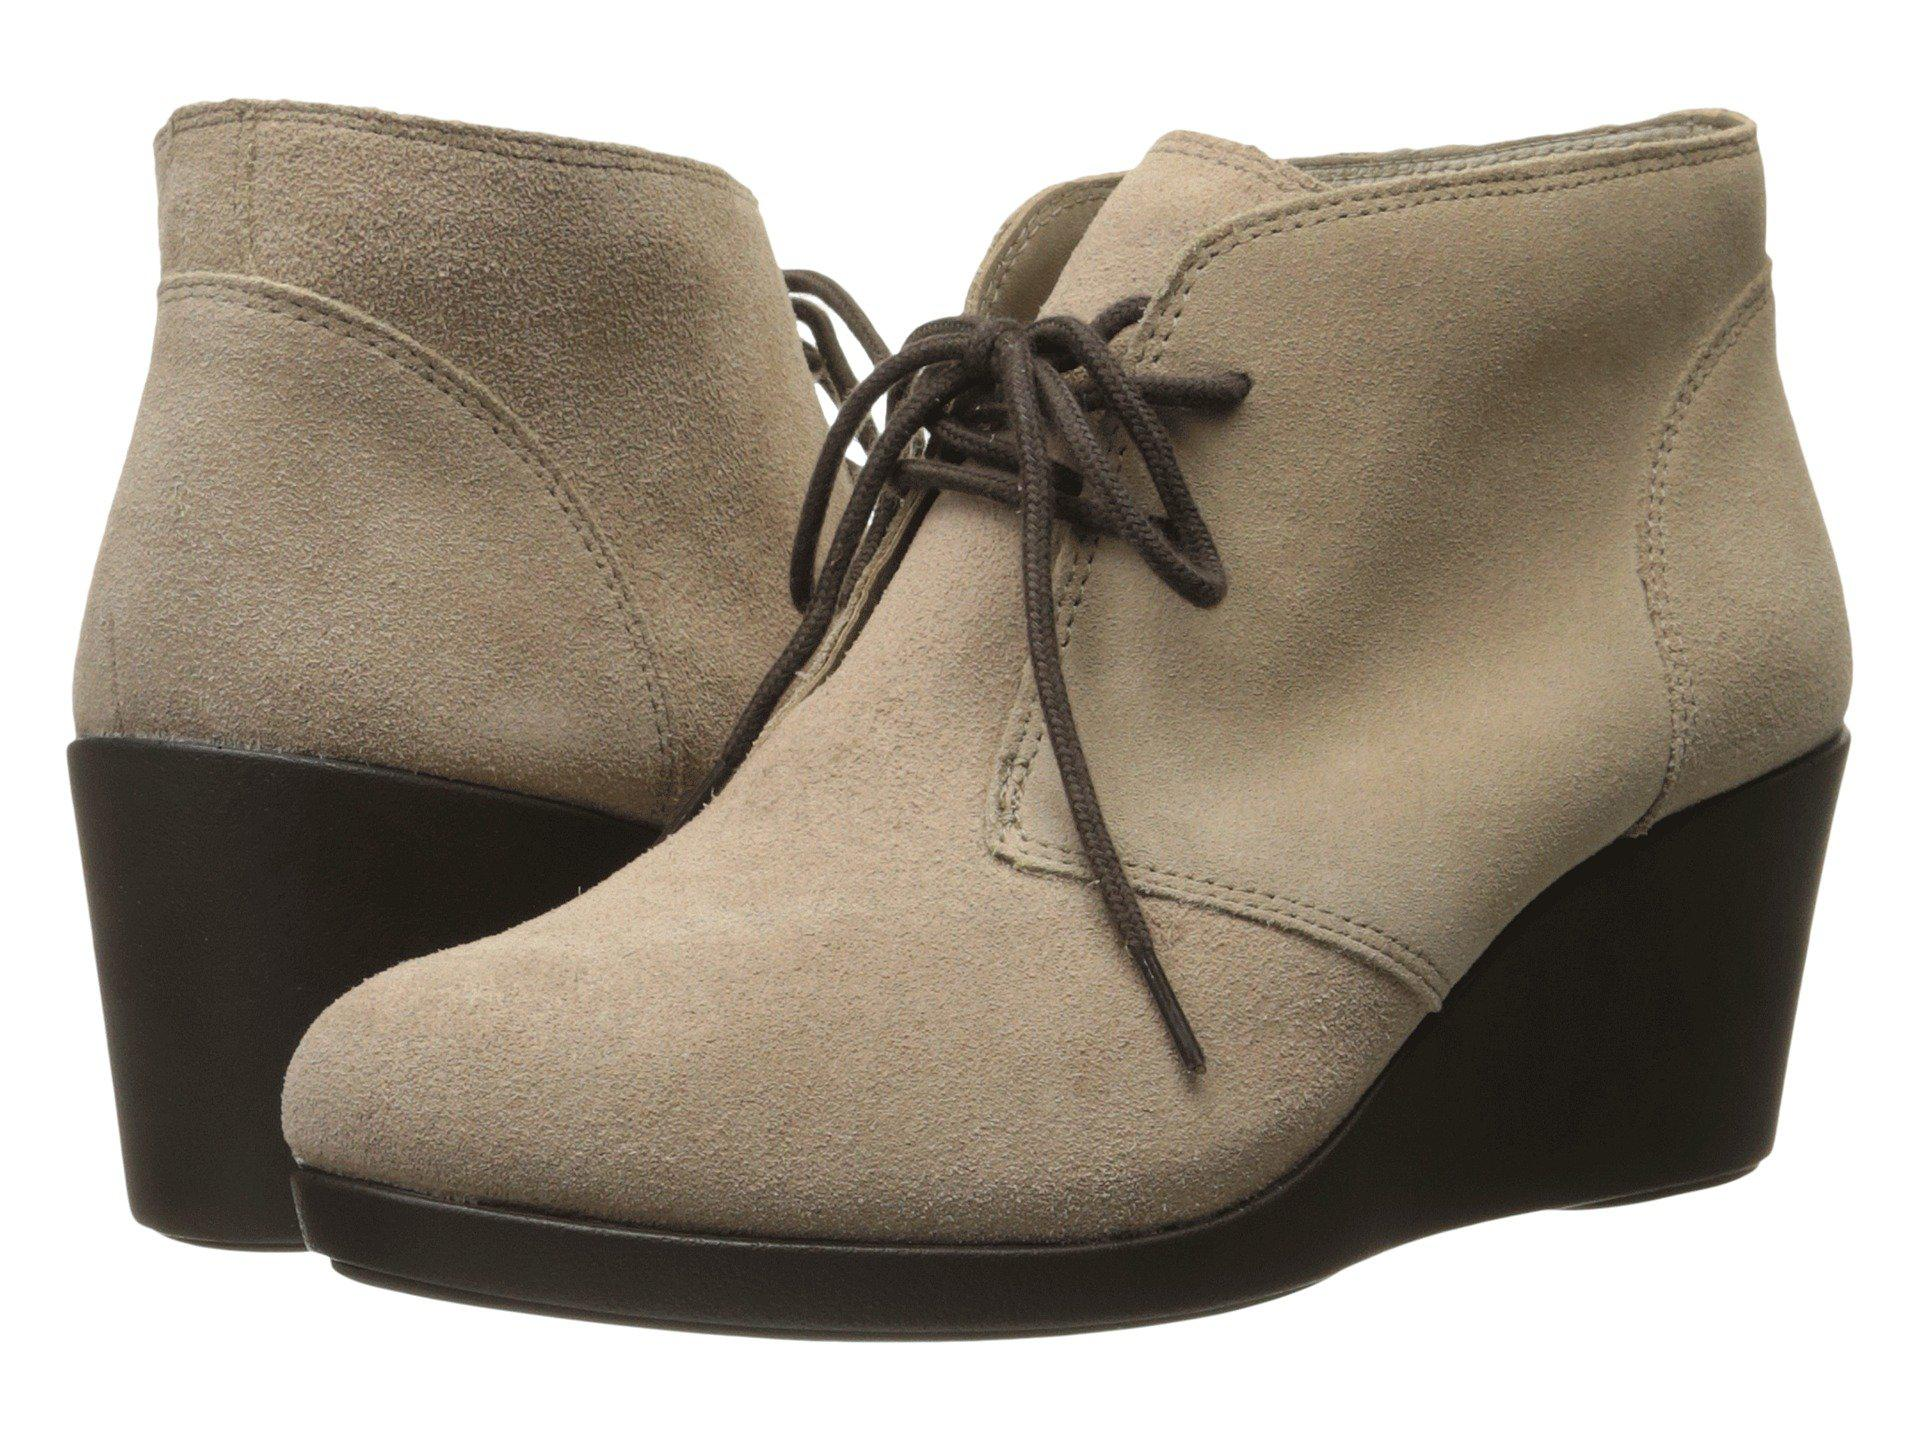 Crocs Leigh Beige Boots cheap the cheapest newest for sale for sale free shipping discount sneakernews VHgZI